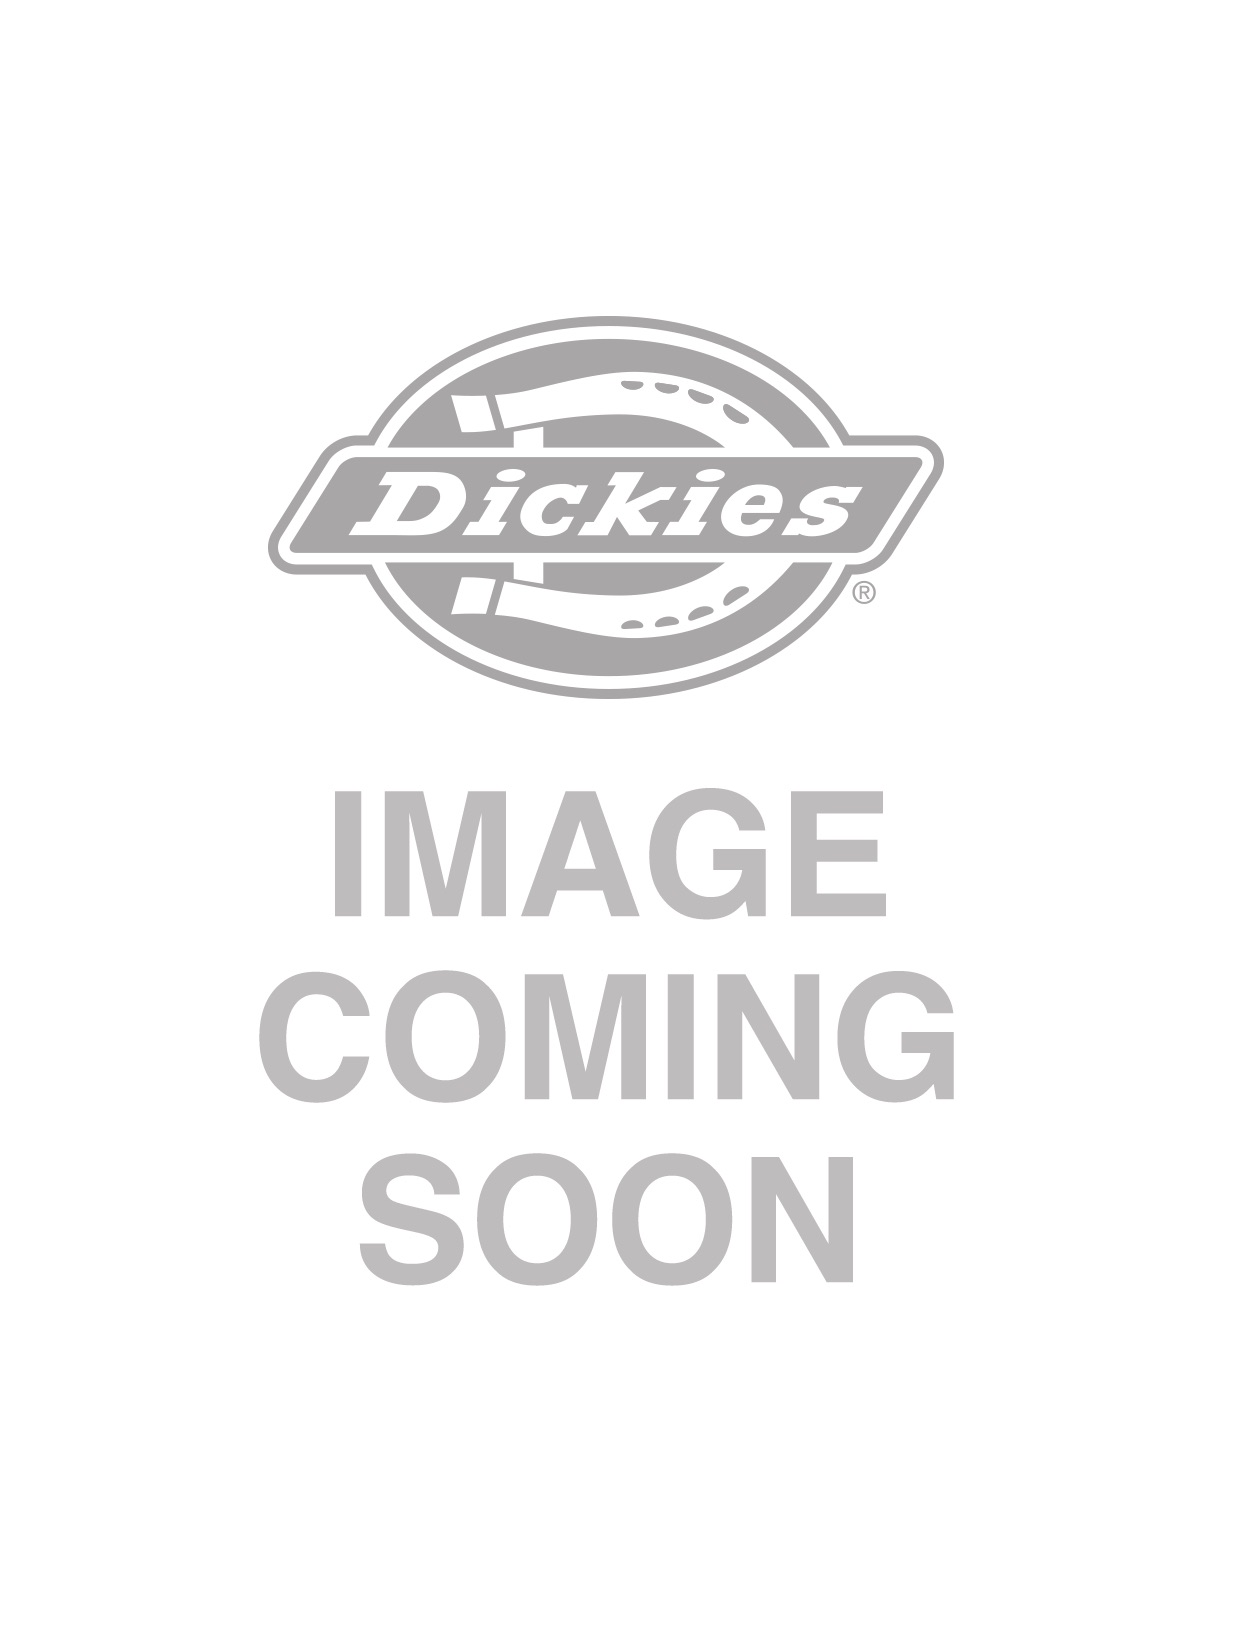 Dickies Womens Cord Work Pant